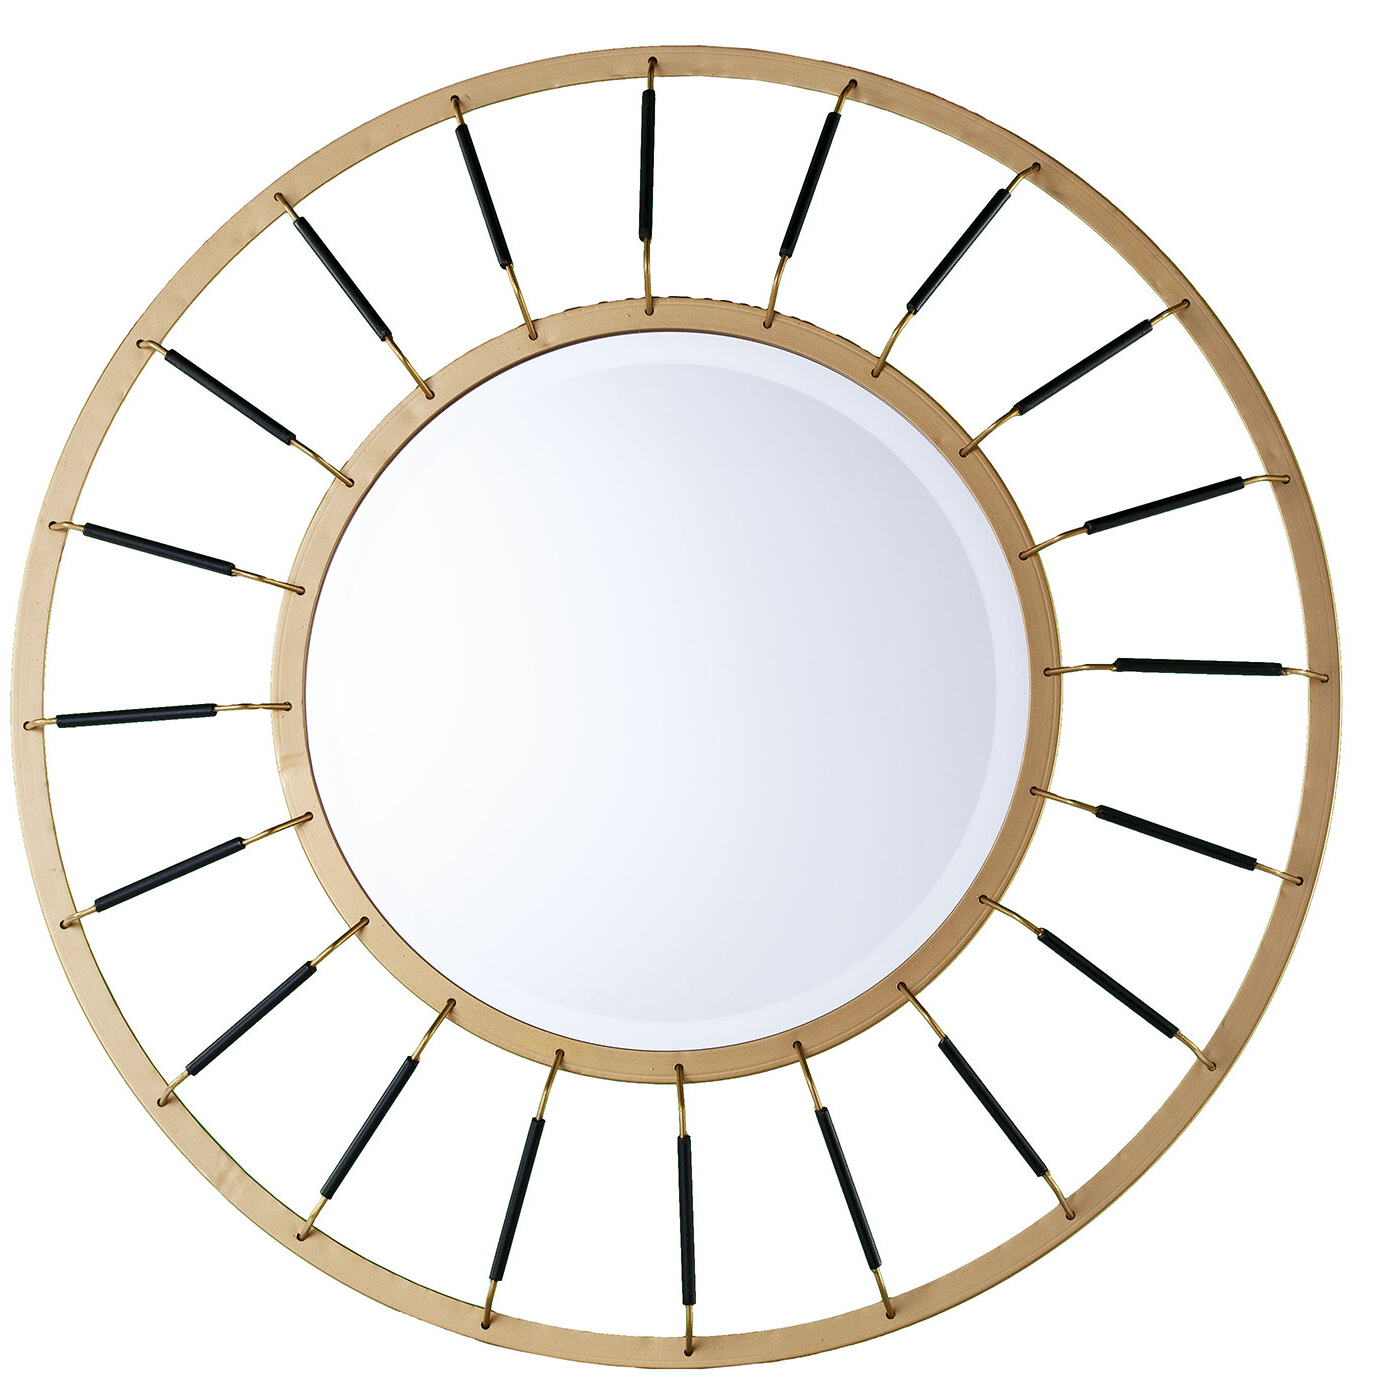 Trigg Accent Mirrors With Regard To Latest Maniscalco Round Decorative Modern Accent Mirror (View 19 of 20)